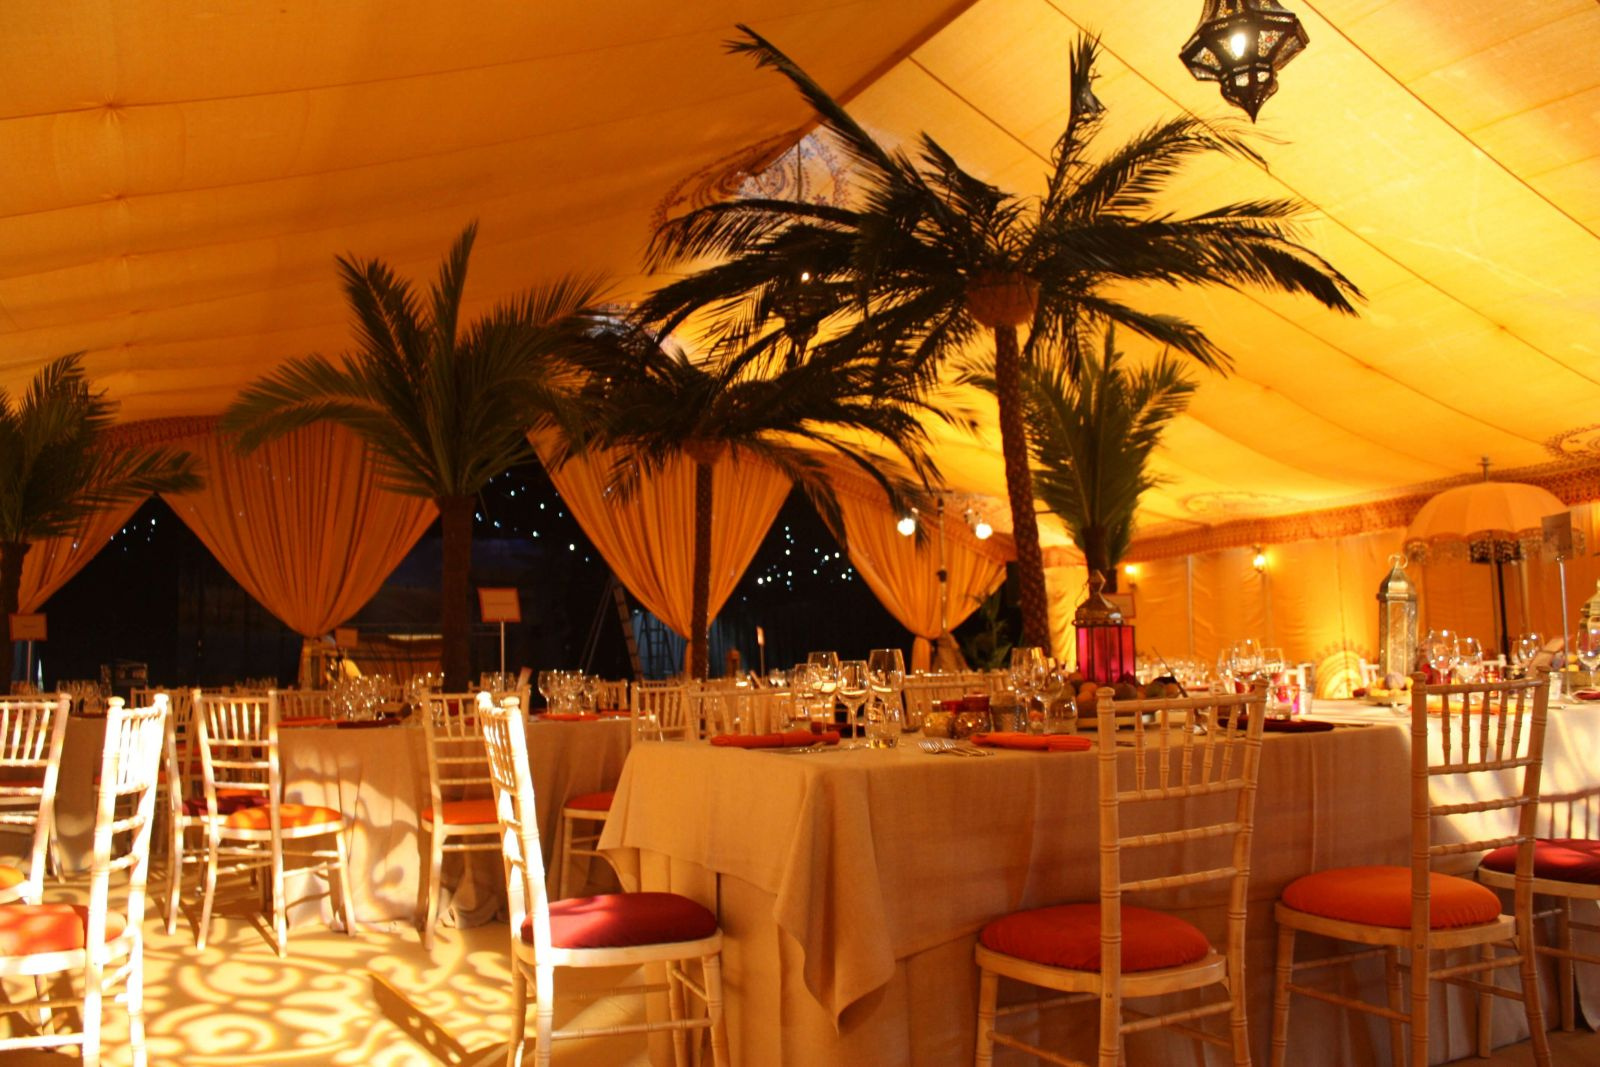 The lighting really enhances this tropical Silk Road themed birthday party in the South West